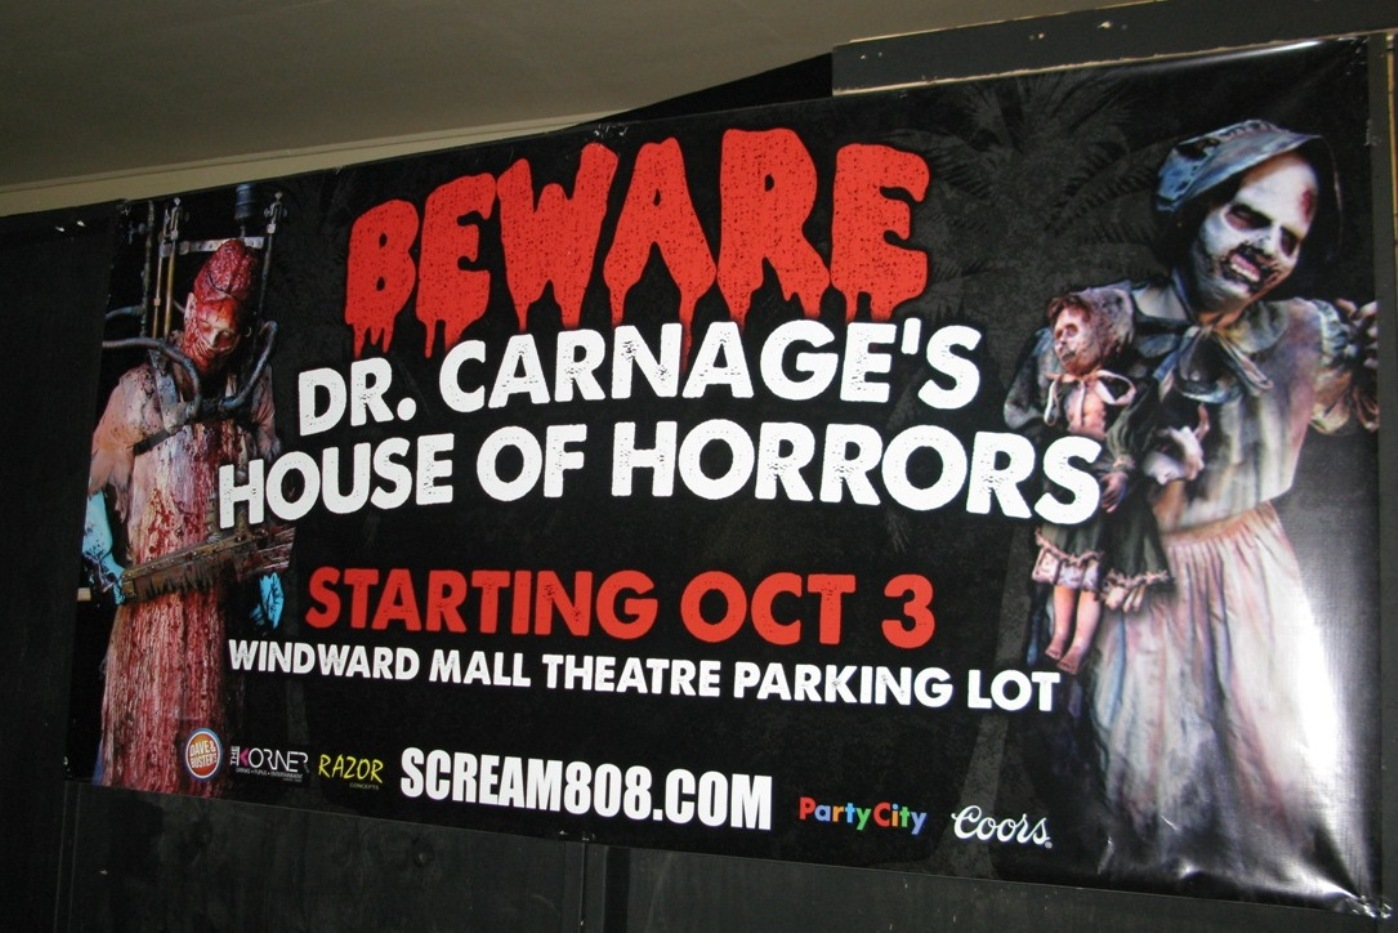 Dr. Carnage's House of Horrors